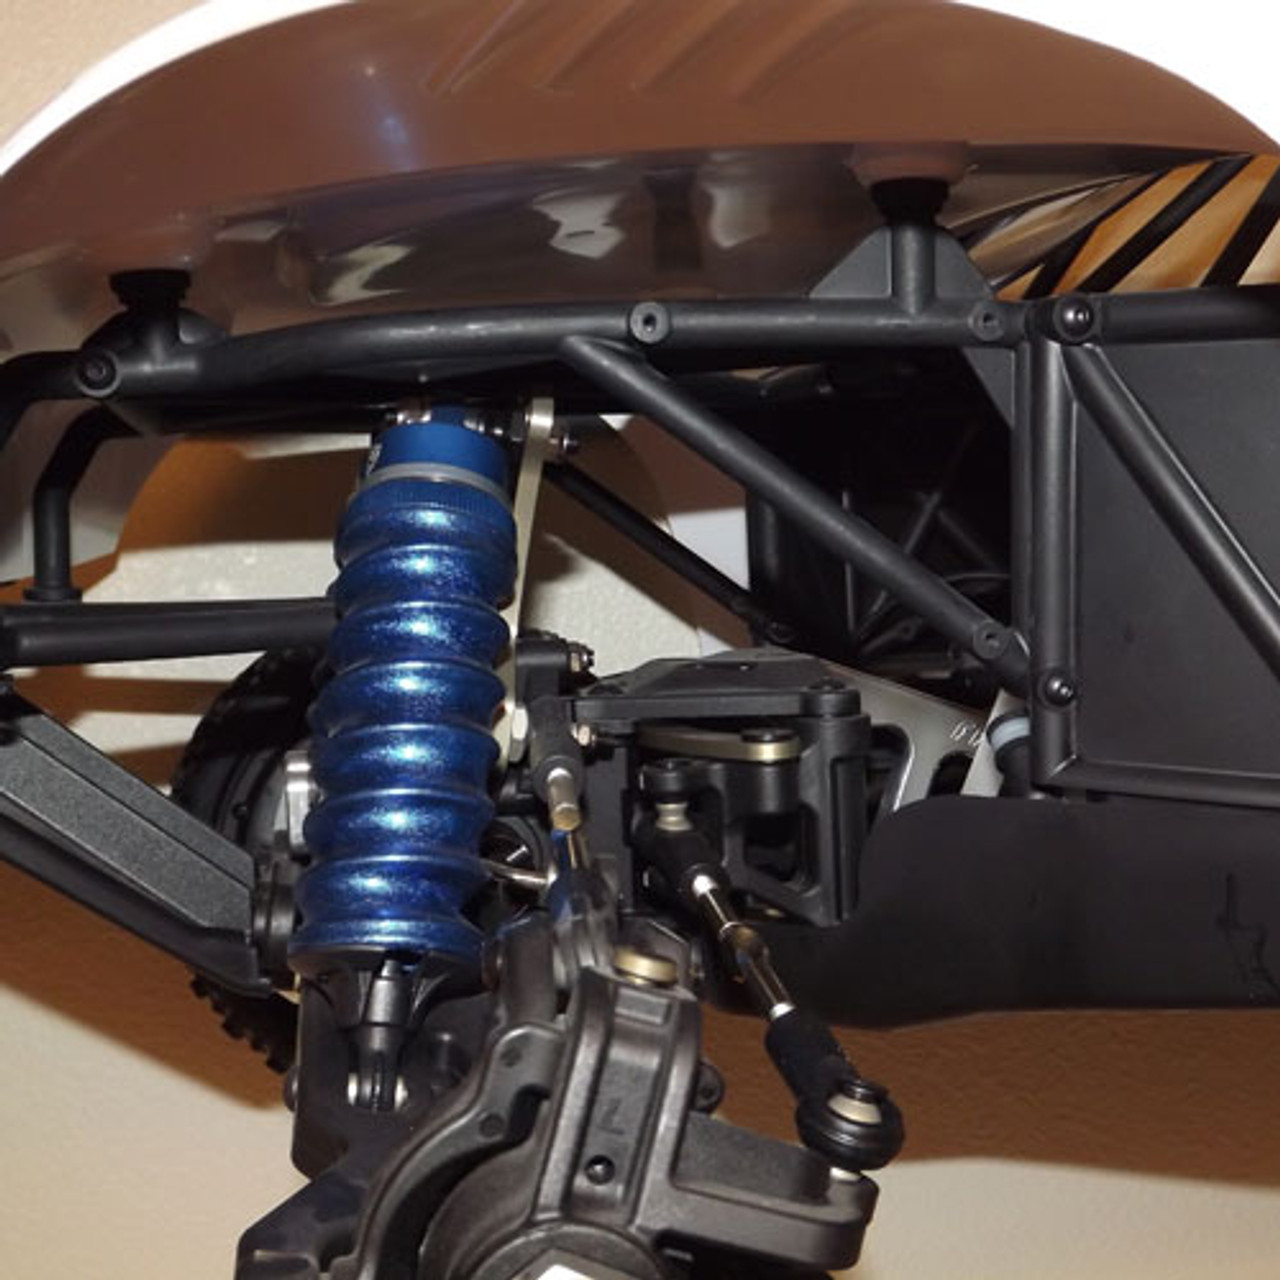 This is the area on the front of the losi 5ive-T that allows dirt into the pan of the chassis.